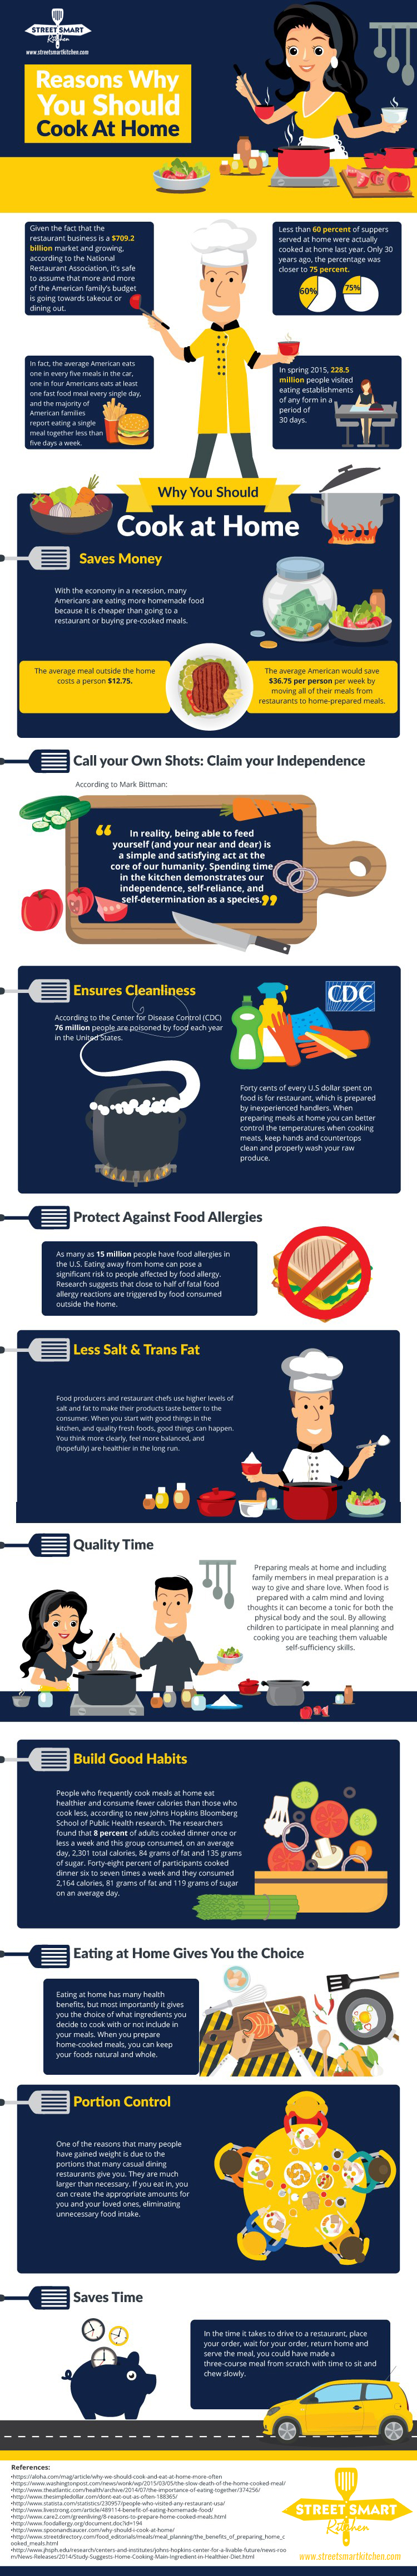 If you are not cooking at home, you know you should. Please allow us to reinforce the important reasons why you should cook at home in this infographic. It's what we believe in and if you do too, share this with a friend who you think will benefit from it.